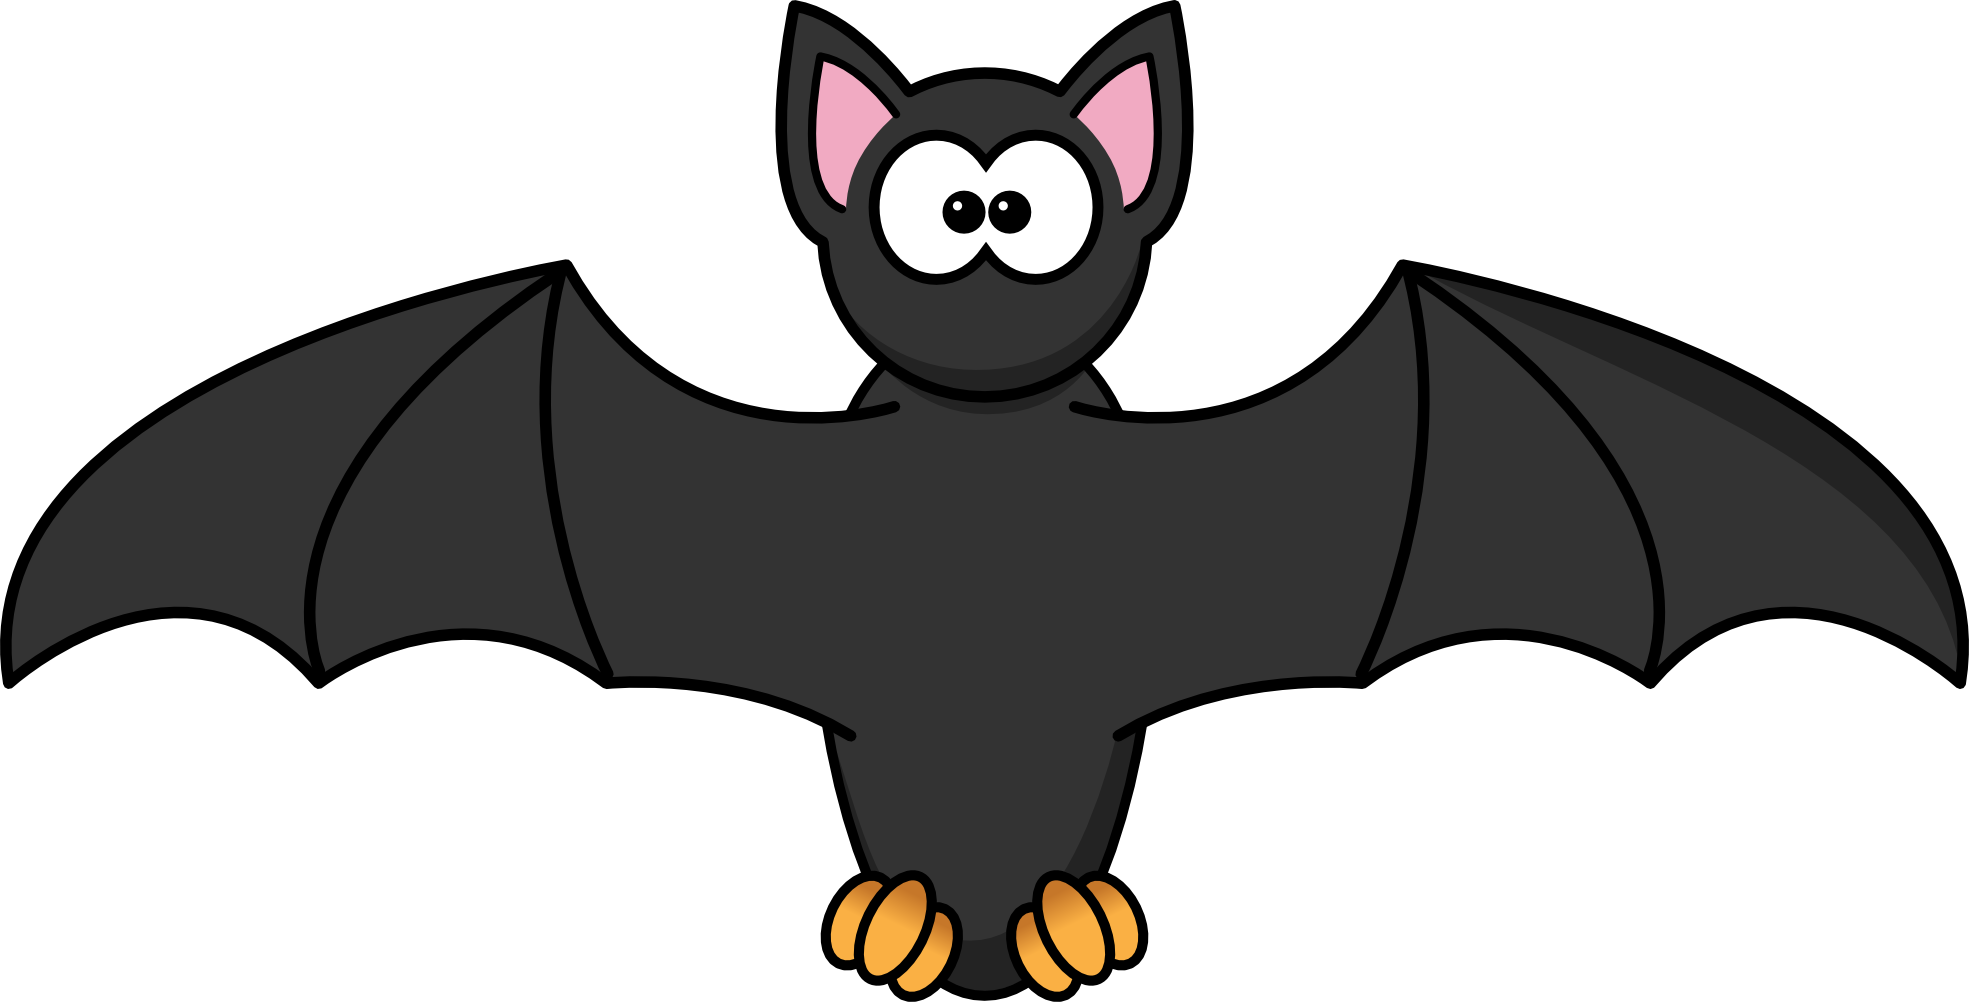 Bat animal. Free clipart download best